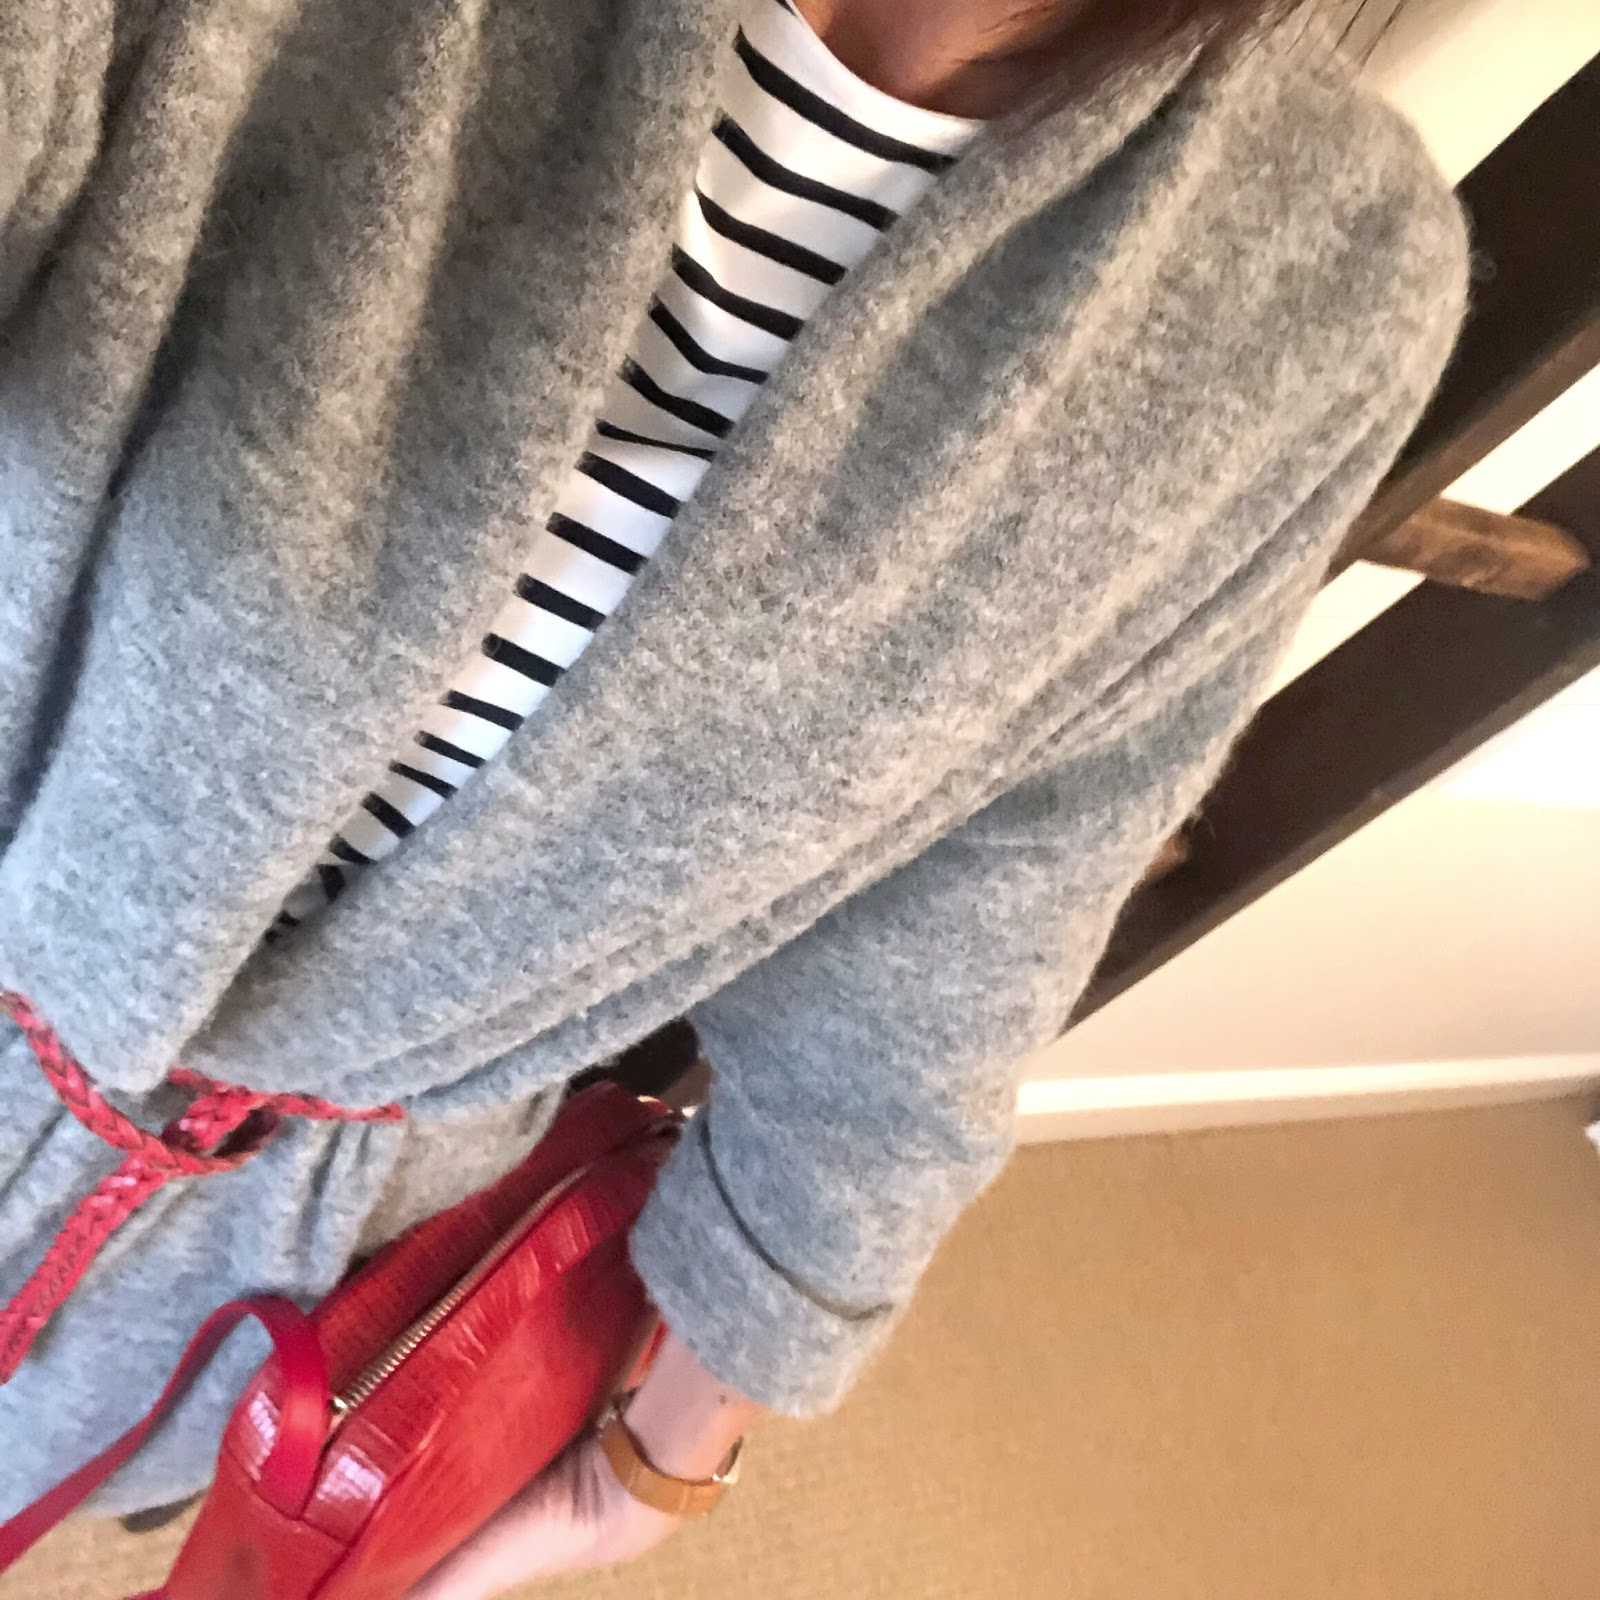 my midlife fashion, uterque mock croc crossbody bag, french sole india mock croc ballet pumps, j crew billie crop kick flare jeans, the white company essential breton long sleeve top, american vintage cardigan